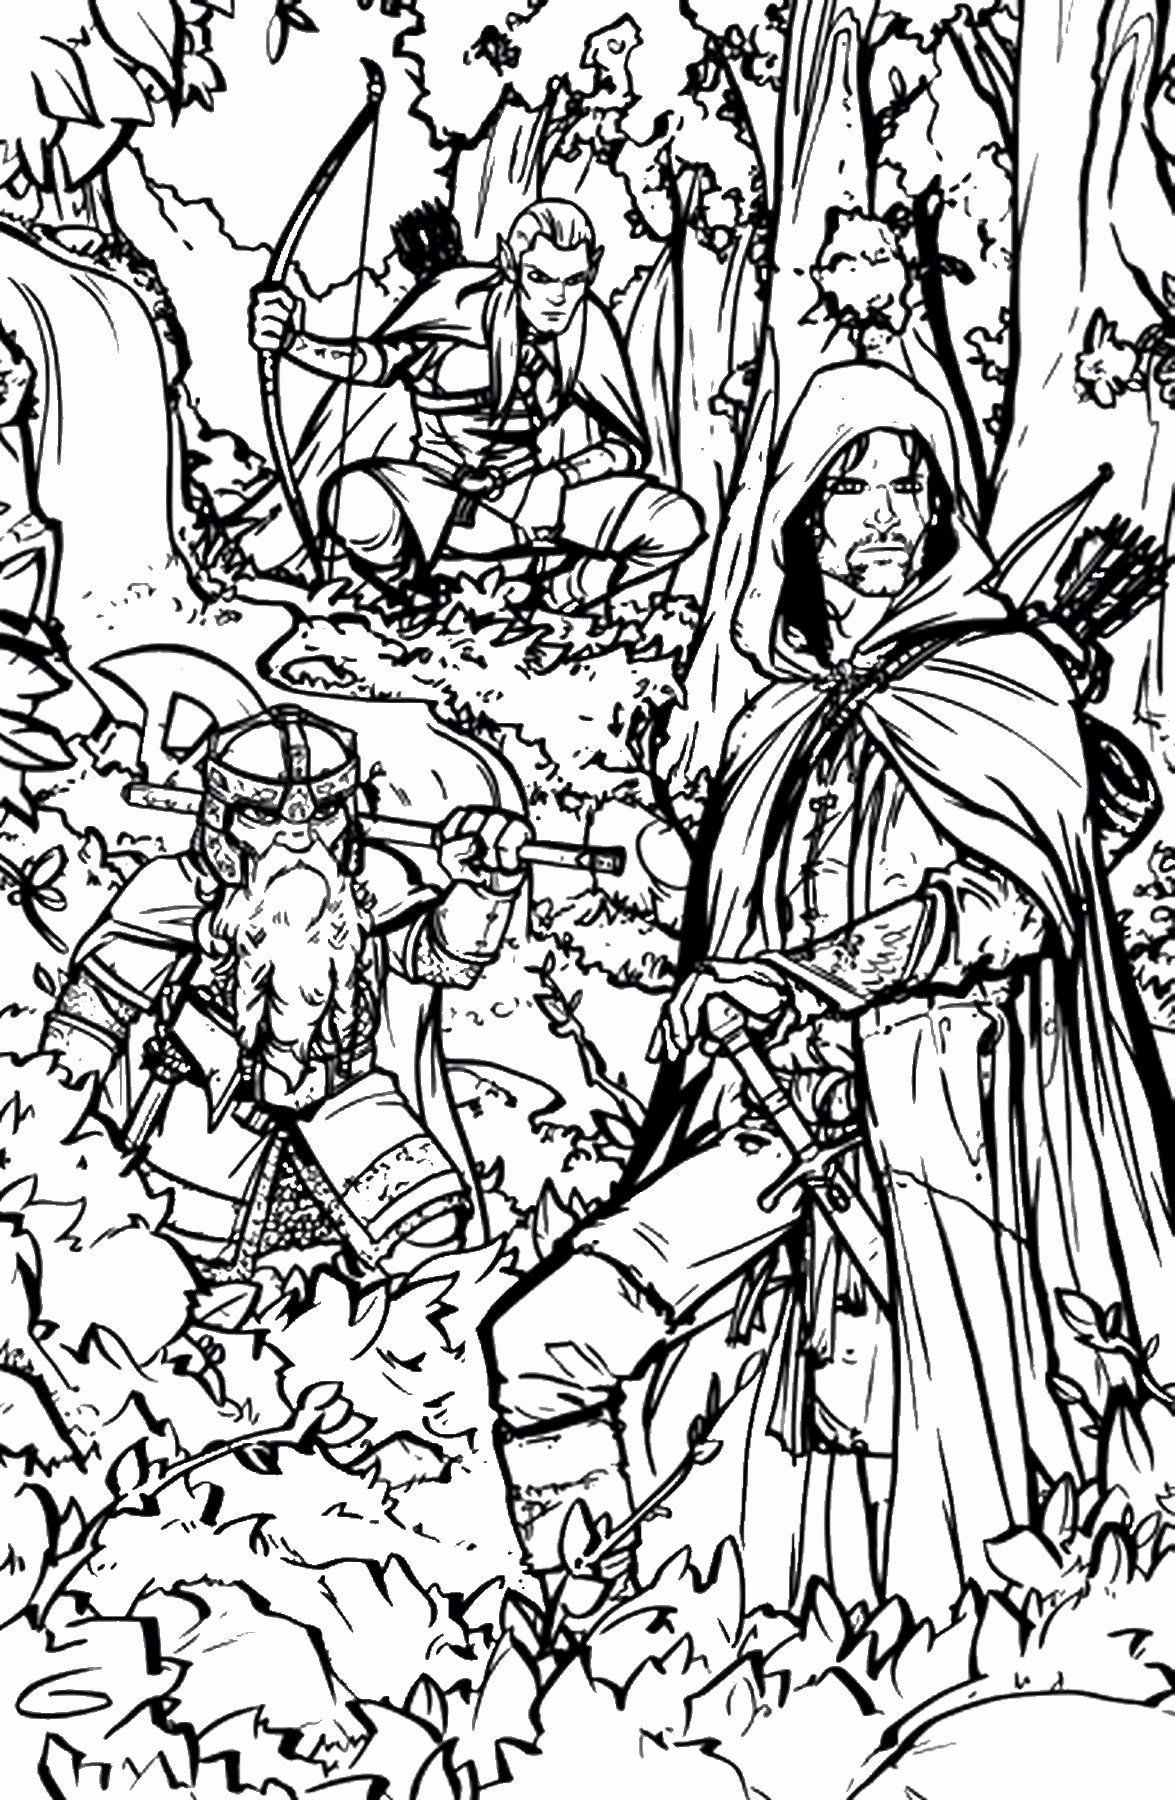 Lord Of The Rings Coloring Book New Lord Of The Rings Coloring Pages In 2020 Coloring Pages Coloring Book Pages Coloring Pictures